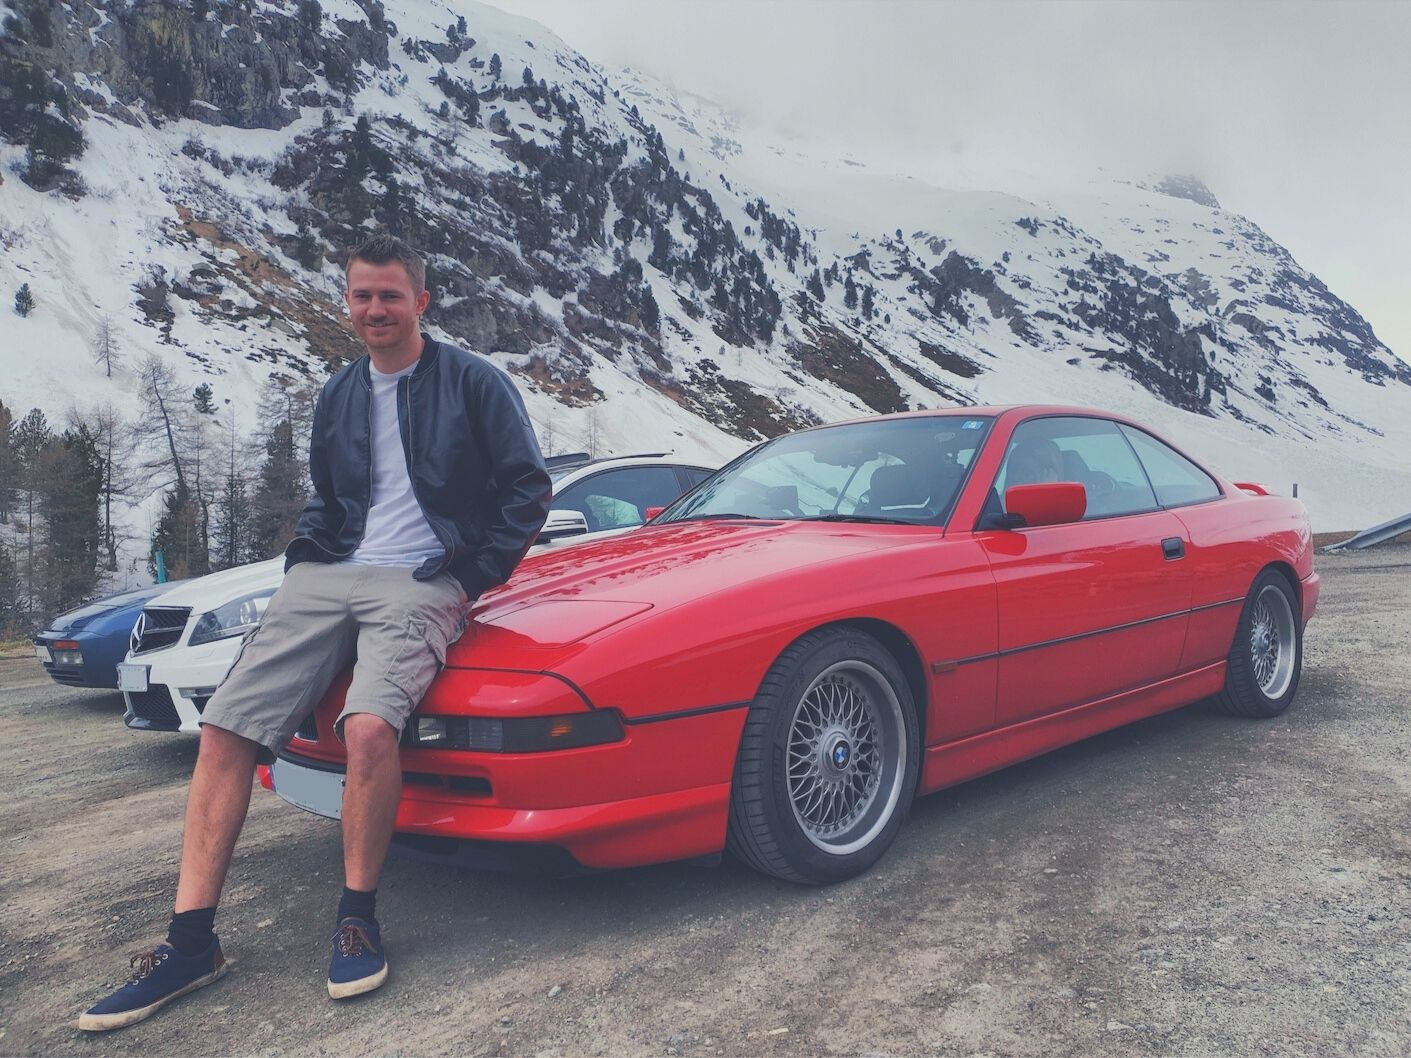 Adam sitting on his BMW 840